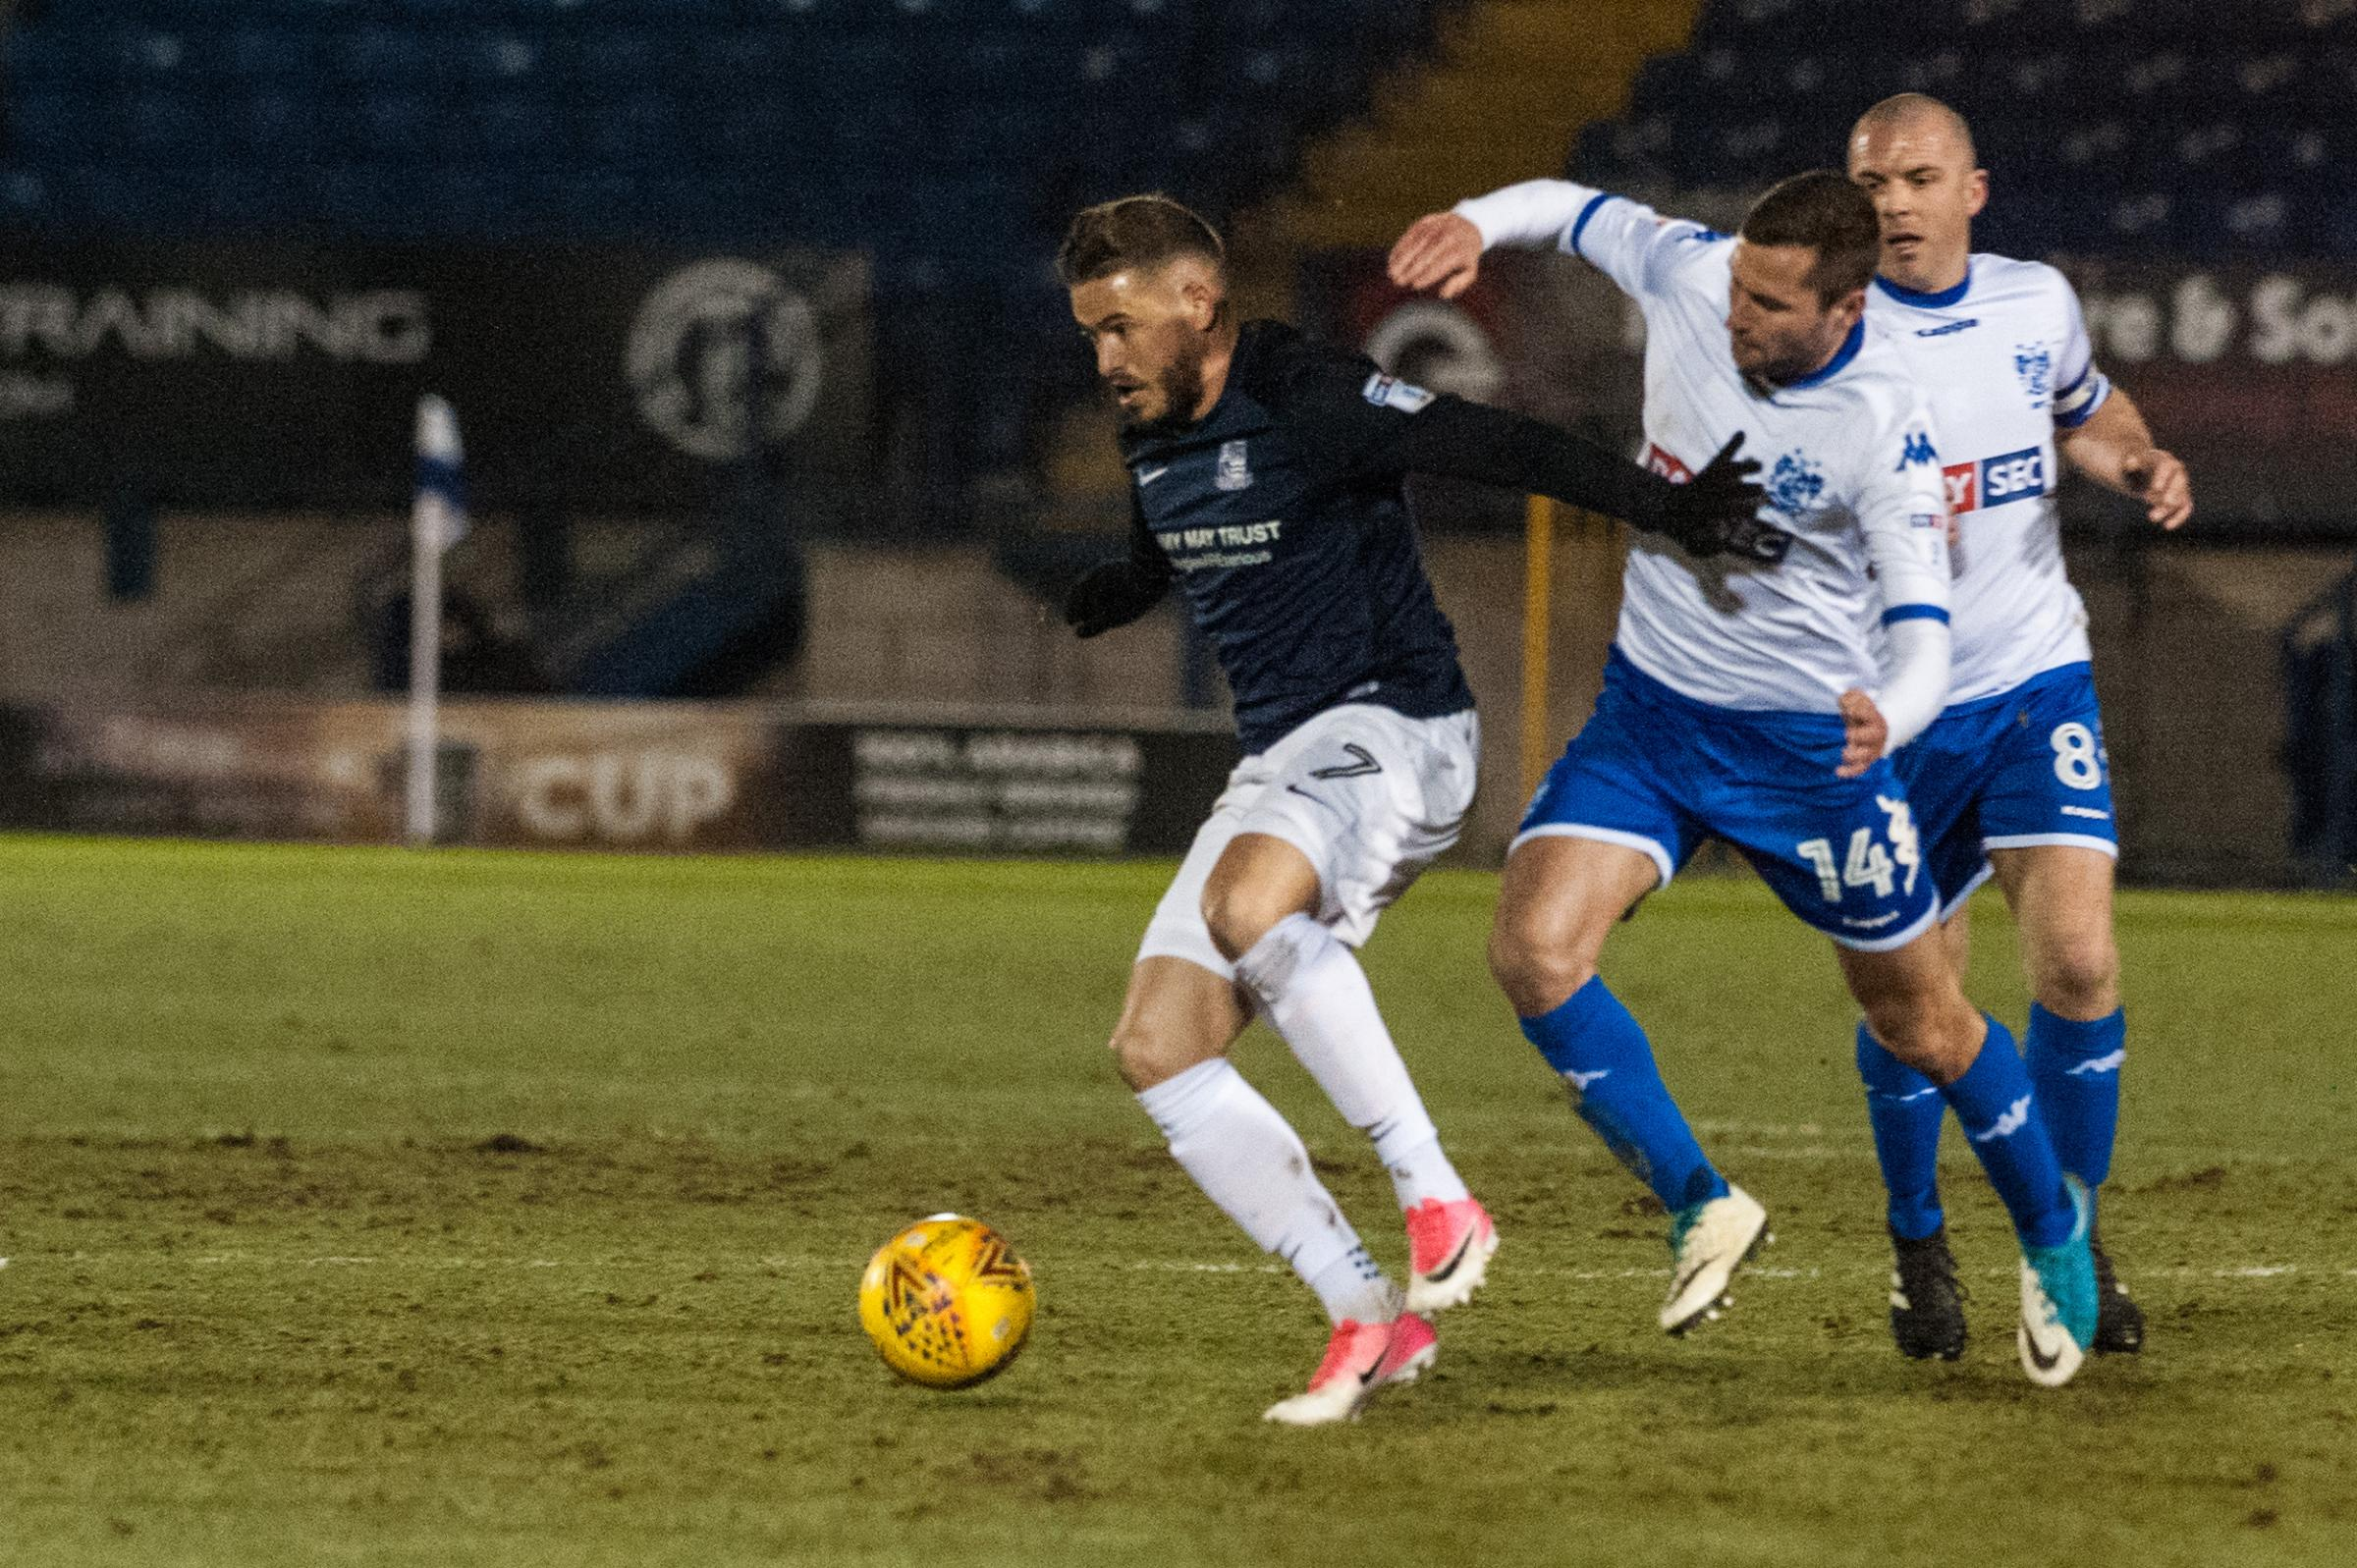 Injured - Southend United winger Michael Kightly